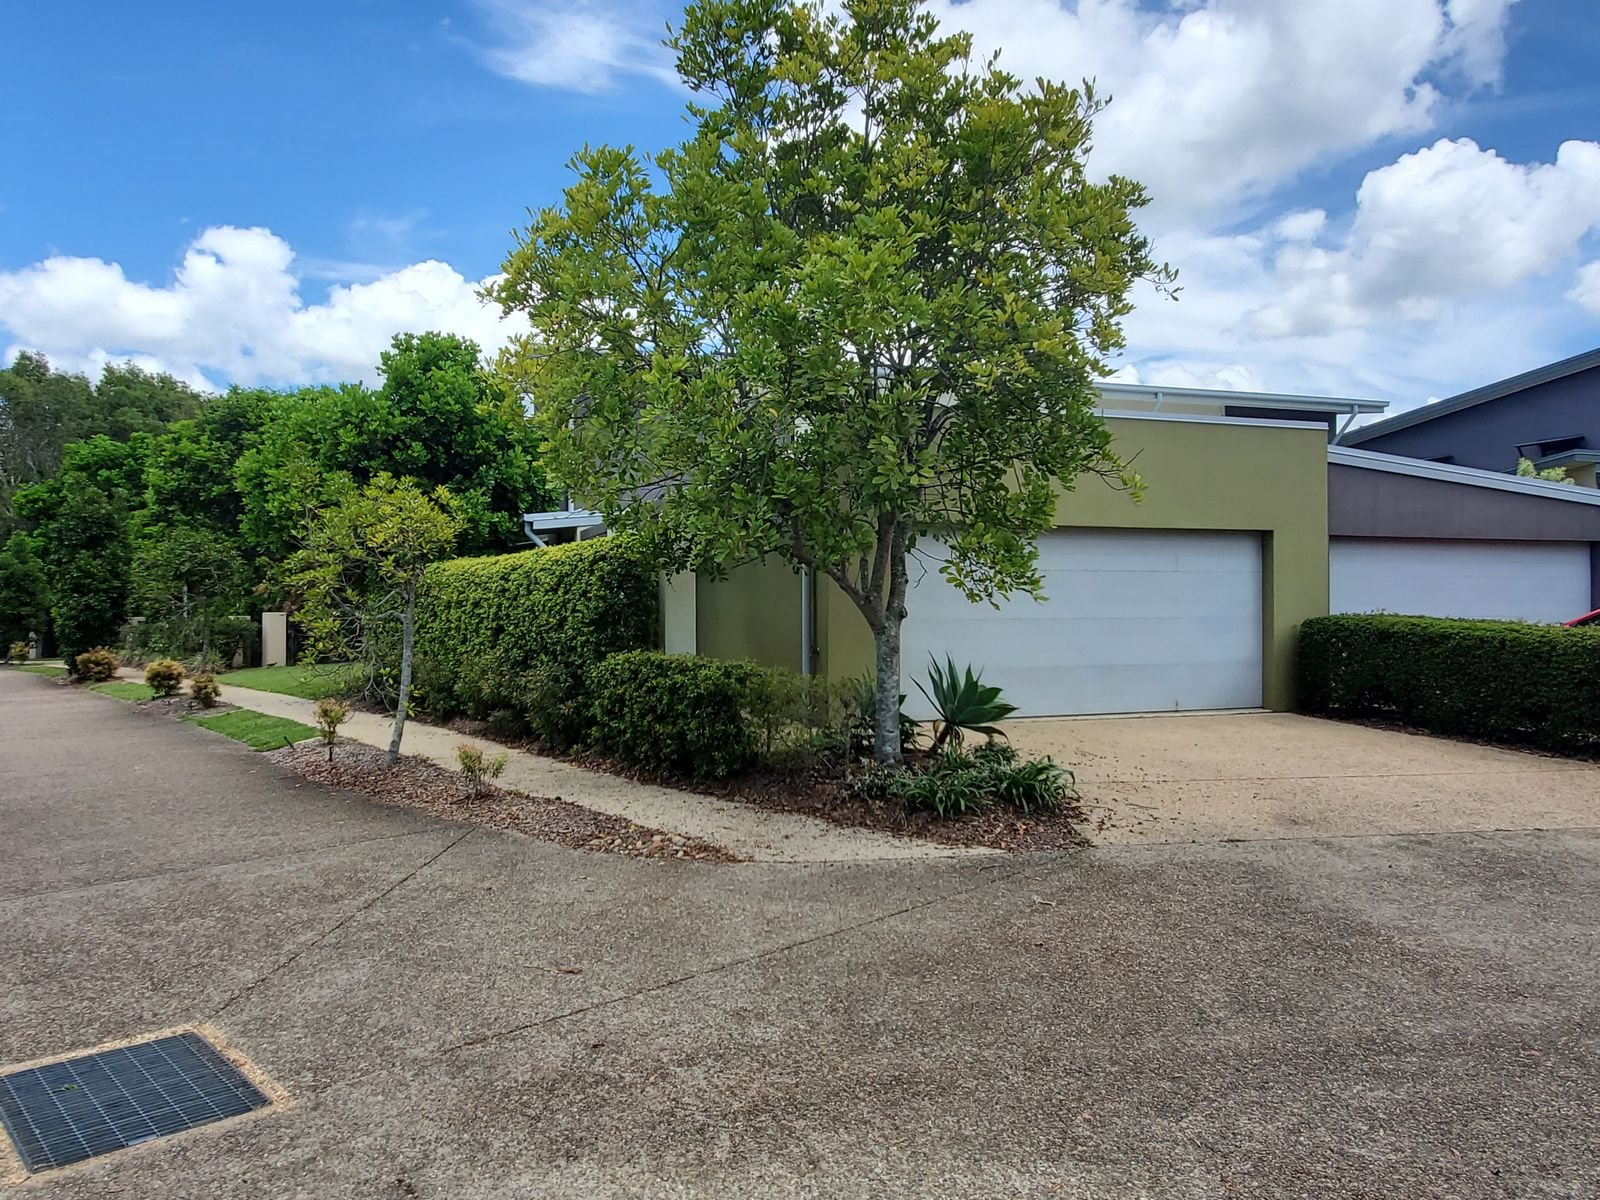 16/2 Lakehead Drive, Sippy Downs, QLD 4556